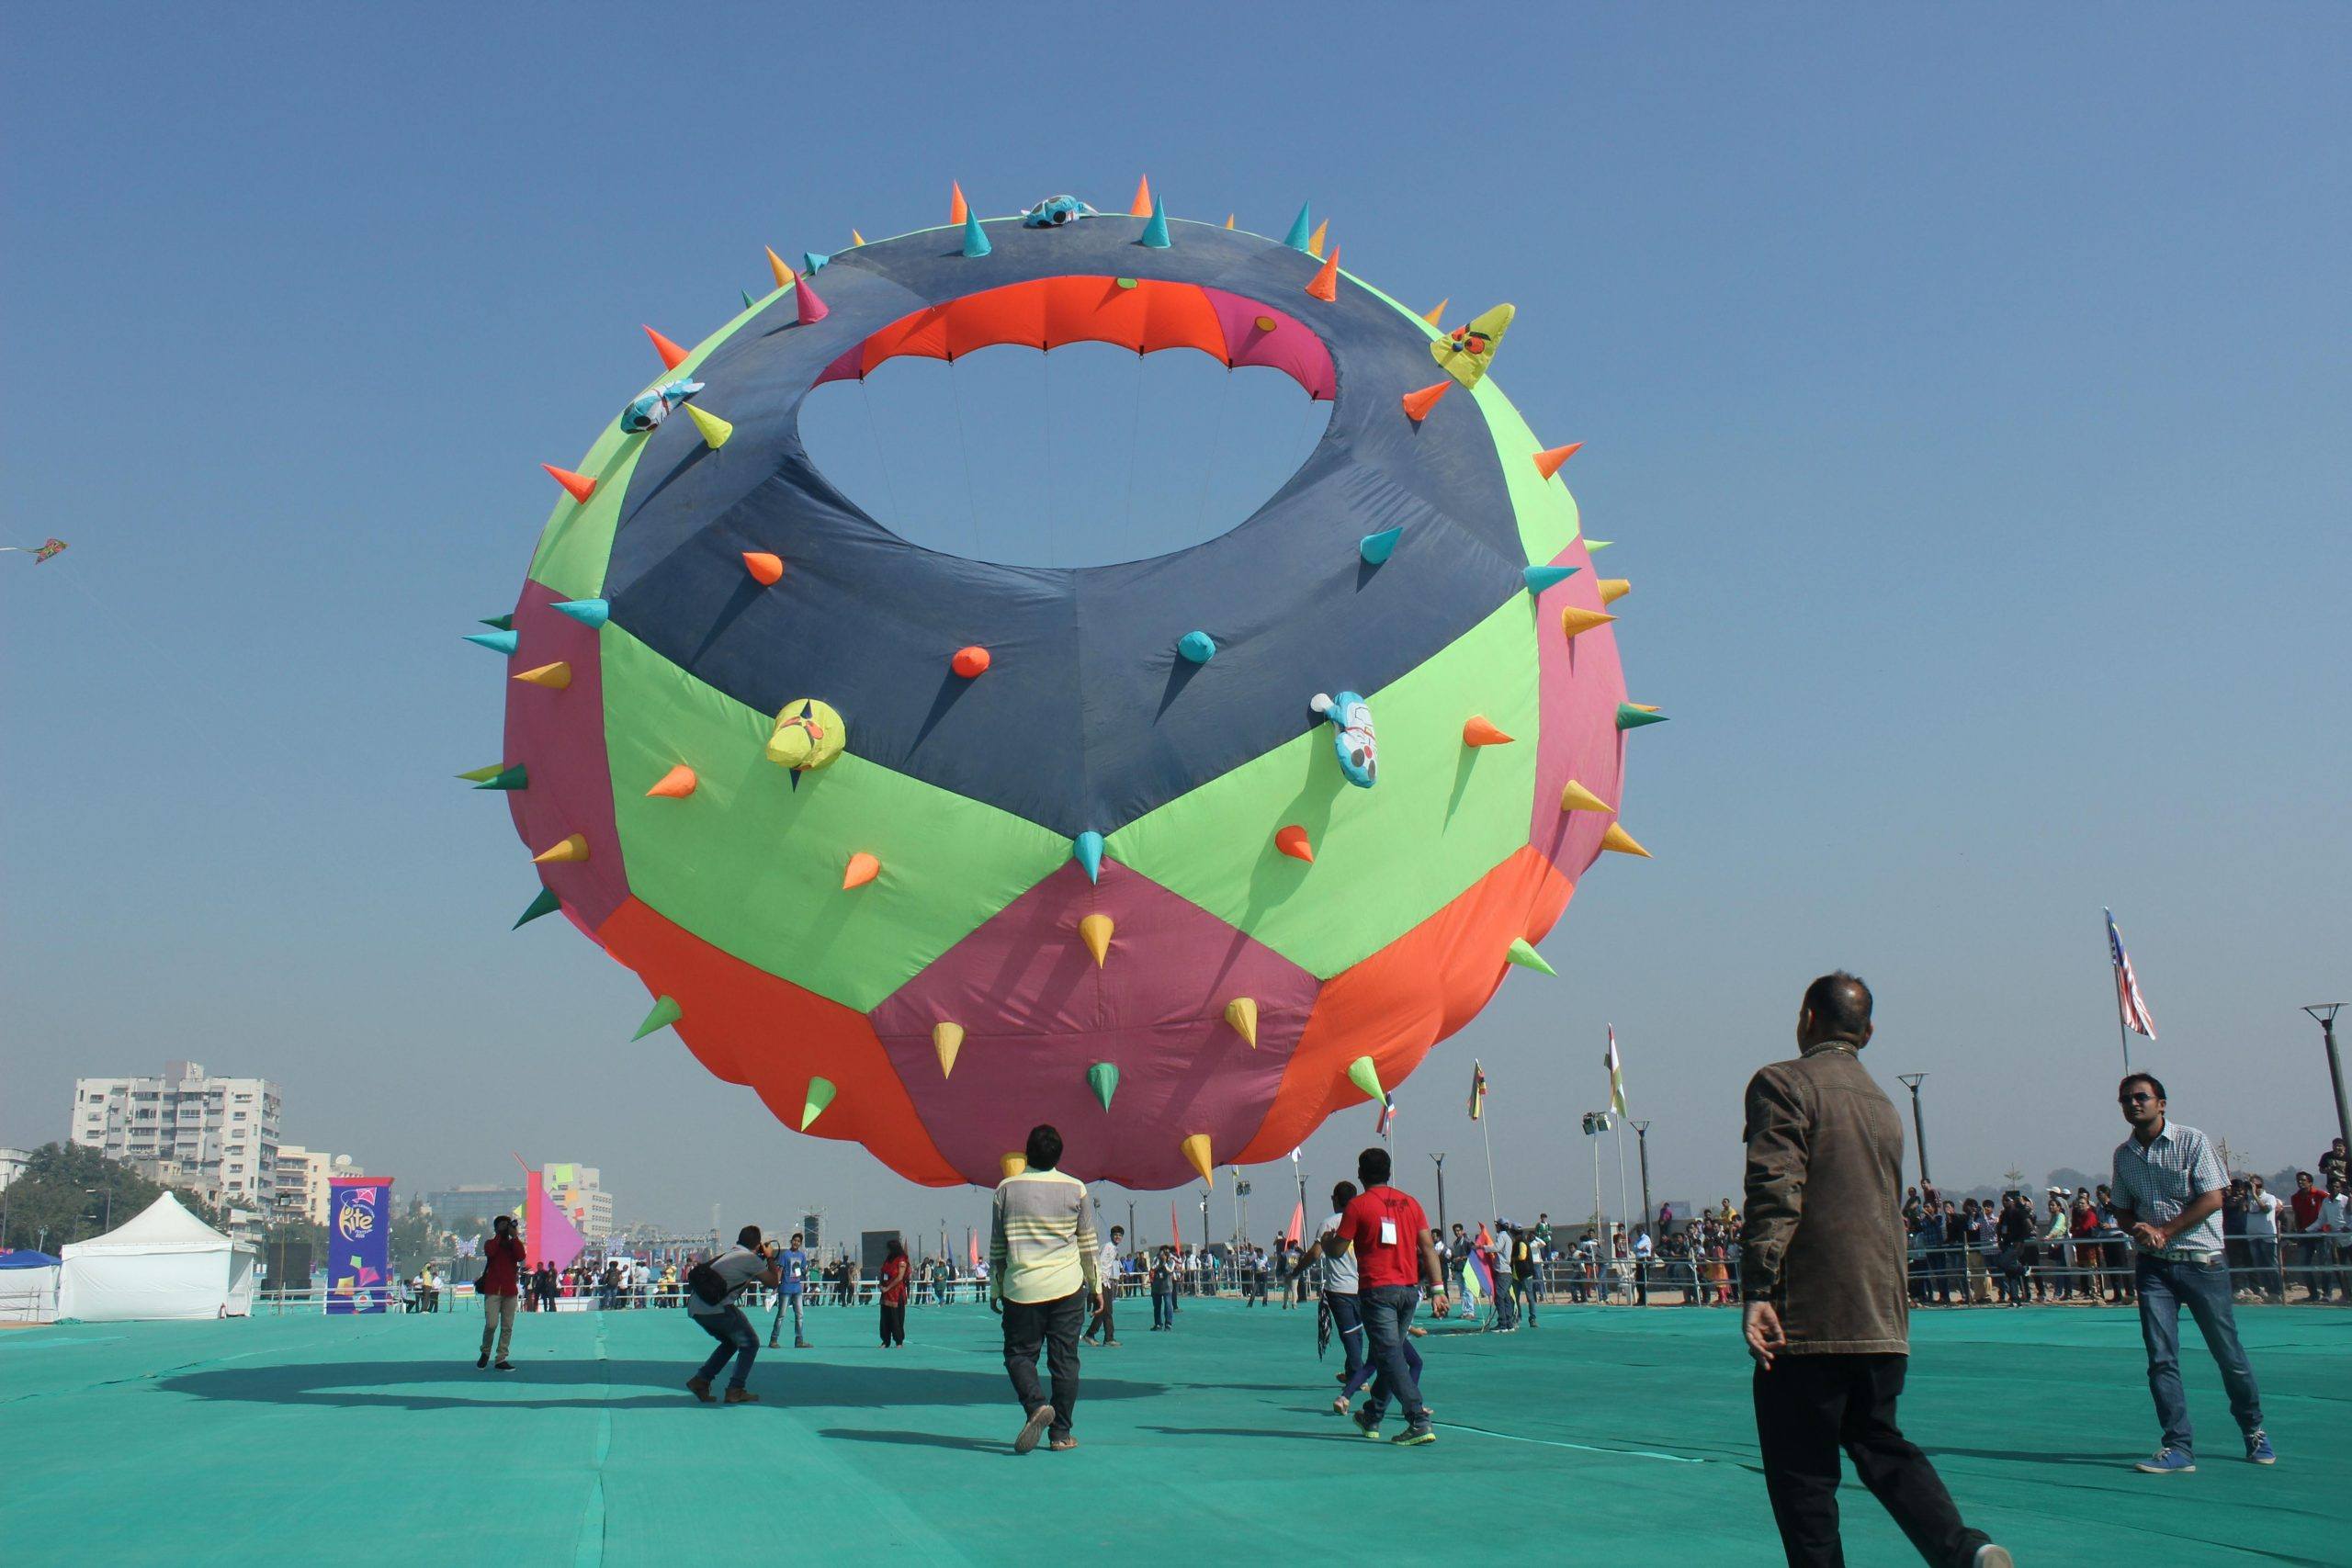 https://creativeyatra.com/wp-content/uploads/2019/12/Kite-Festival-2020-scaled.jpg